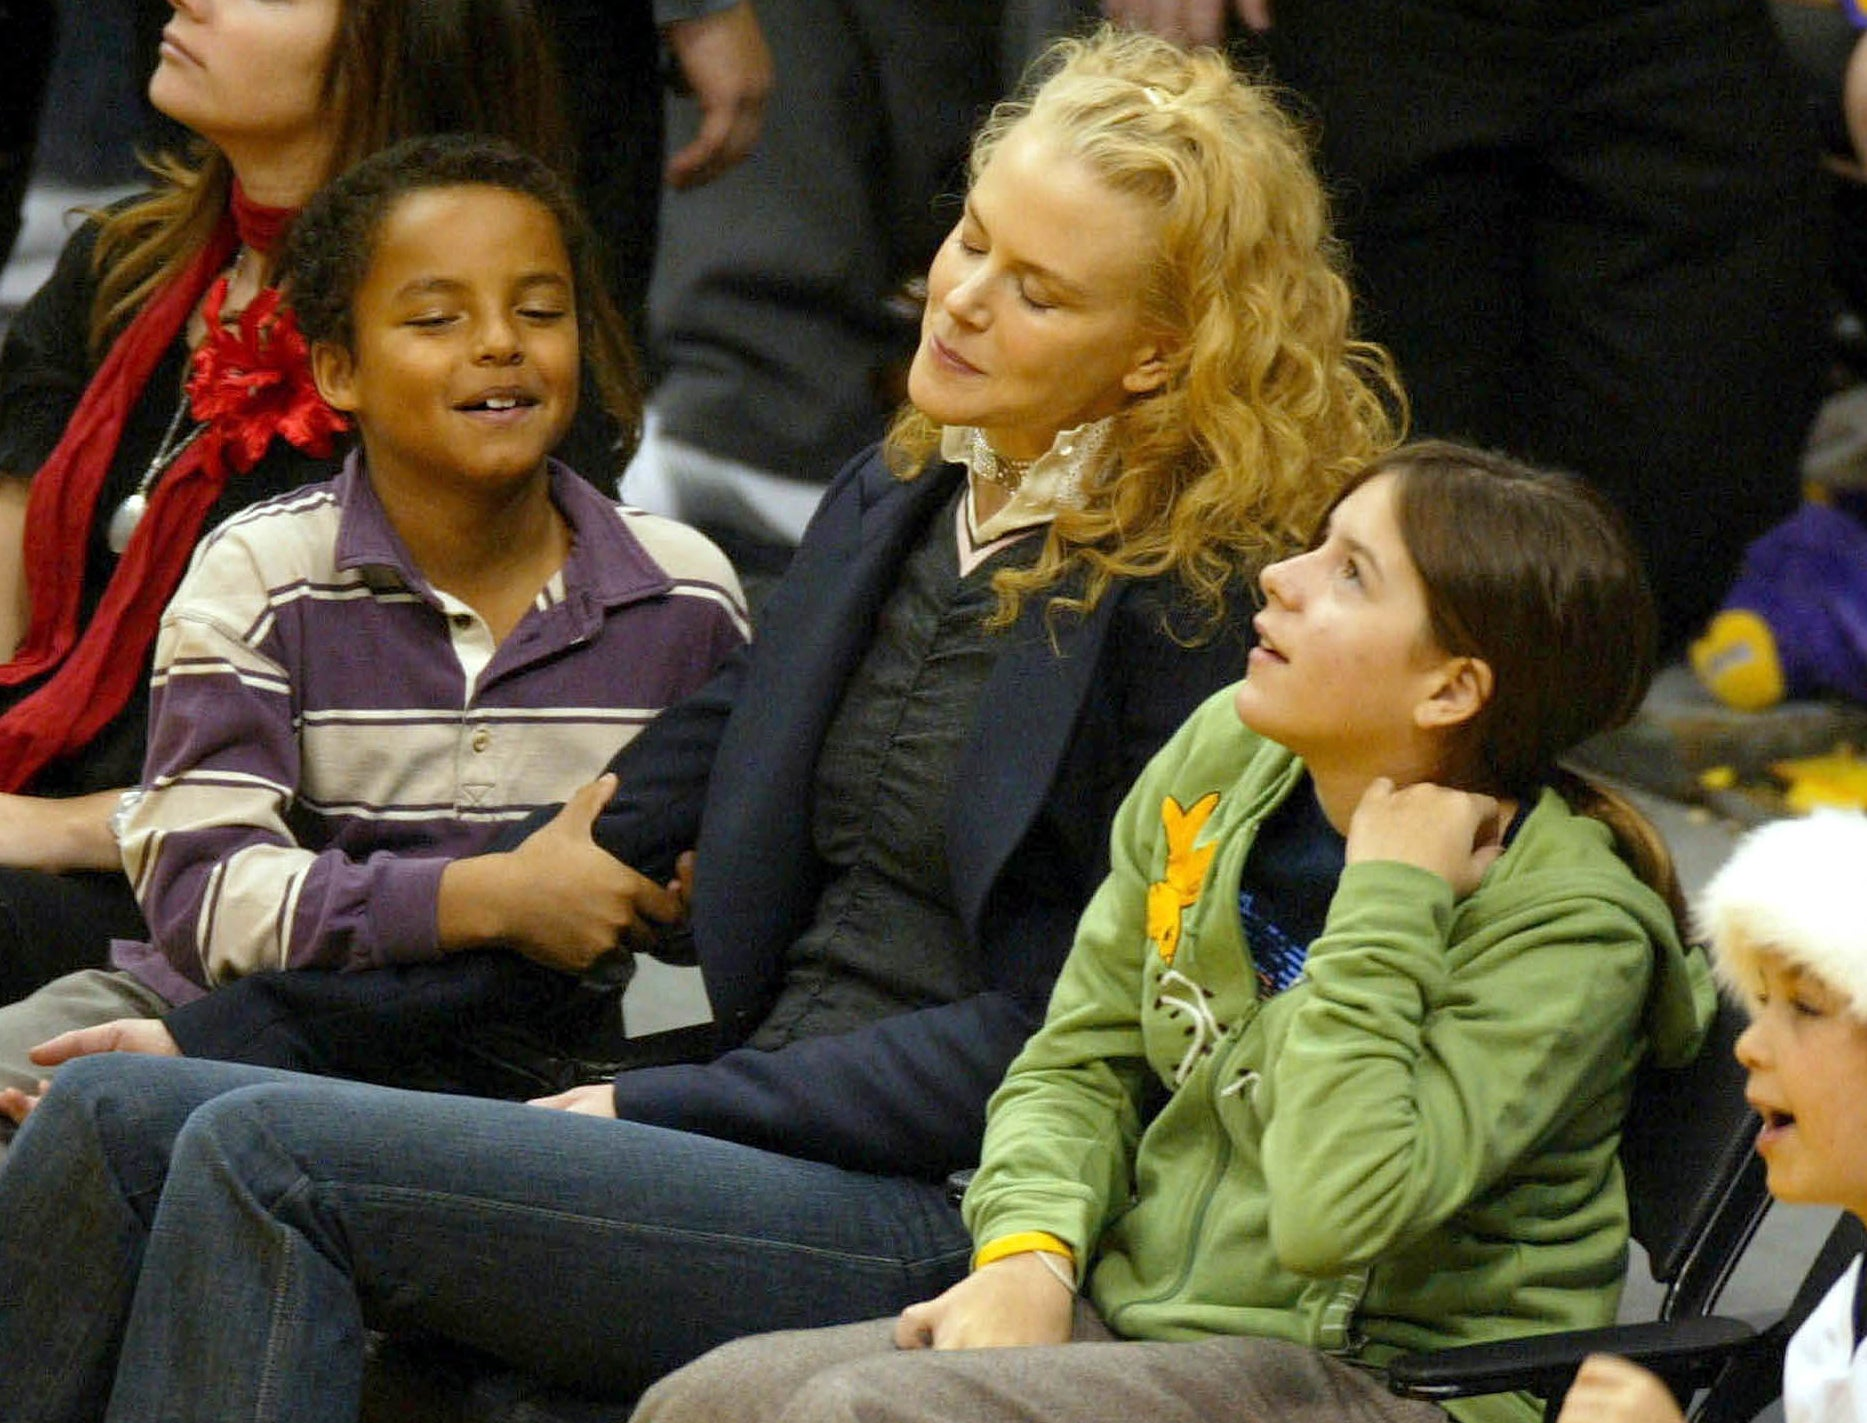 Bella sits next to Nicole and Connor court side at a basketball game